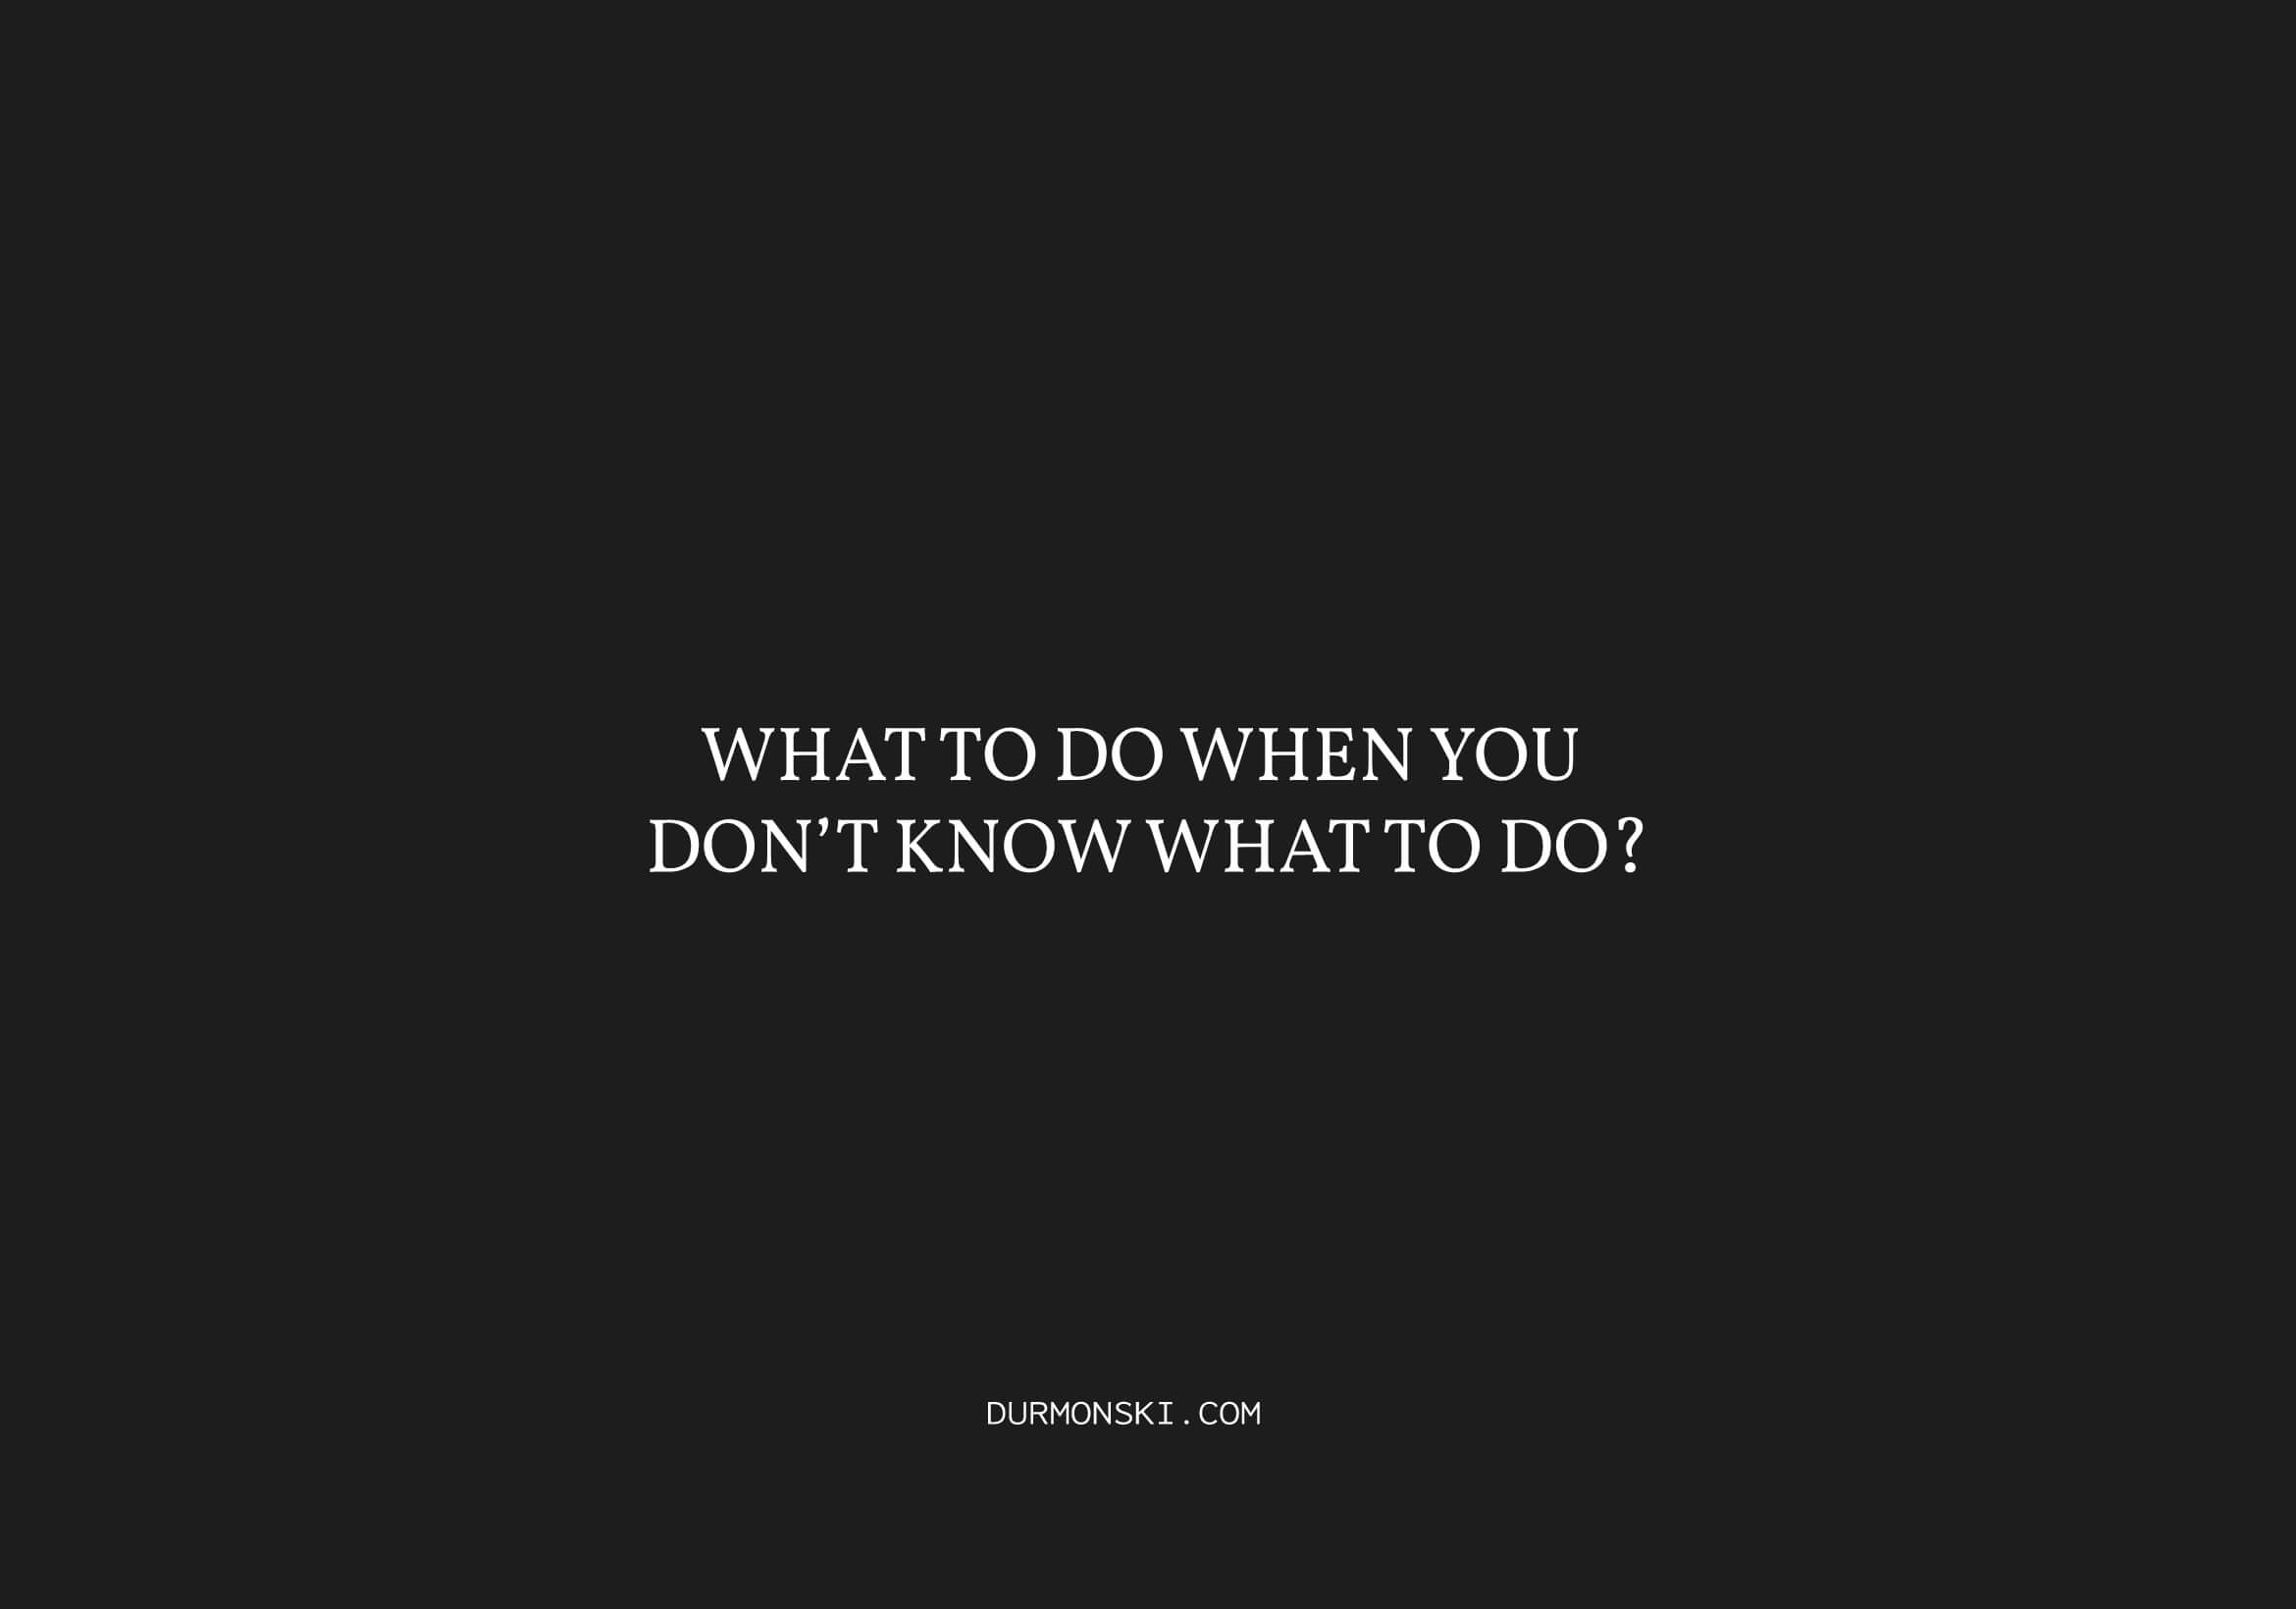 When-You-Dont-Know-What-To-Do